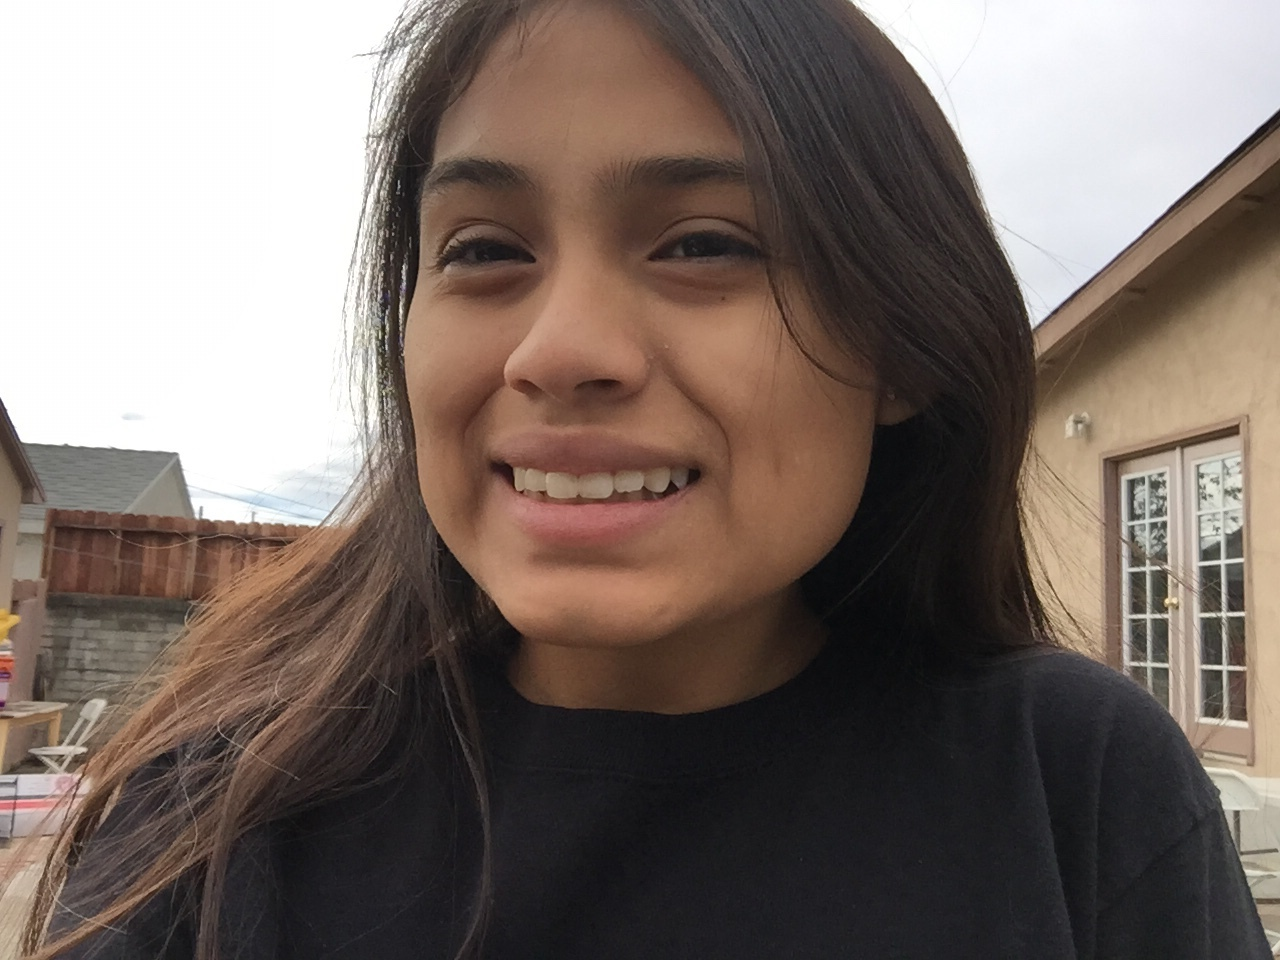 My name is America Hernandez and I am a junior at San Fernando High School. I am so happy to be working with DIY girls and contributing to make a change in our society. I am part of the structures team which is in charge of building the tent. I am so excited to see what we are capable of doing.